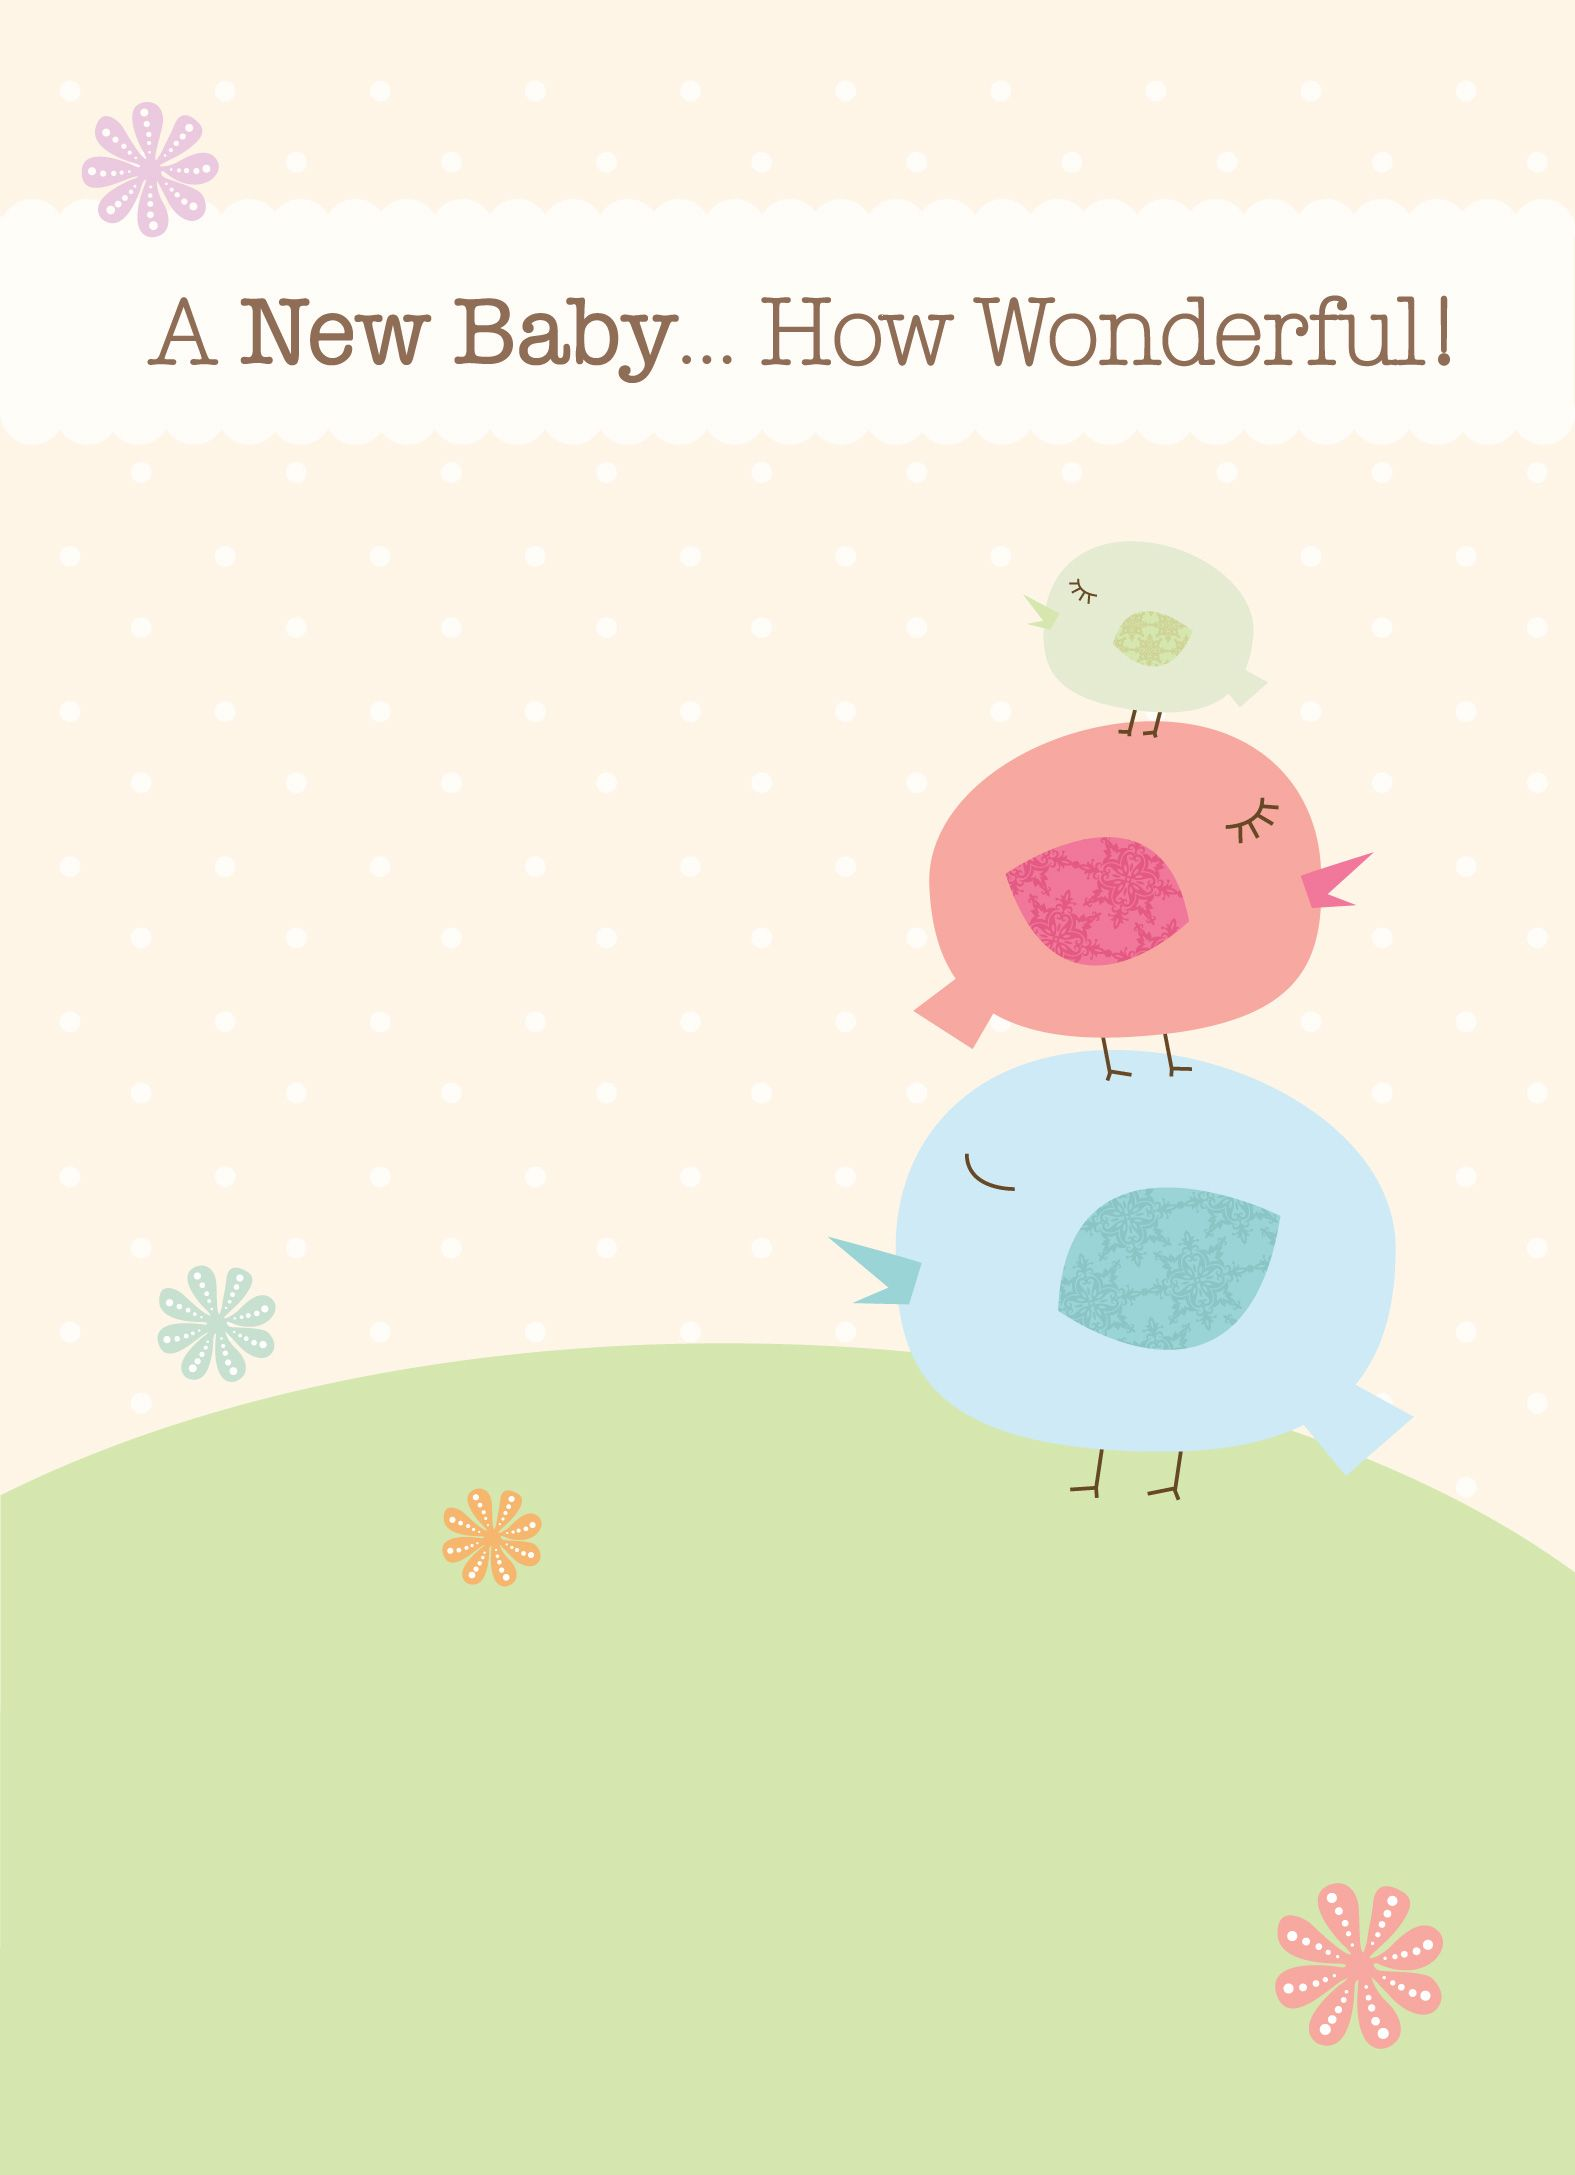 New baby is a wonderful news baby greetings gifts pinterest new baby is a wonderful news kristyandbryce Gallery